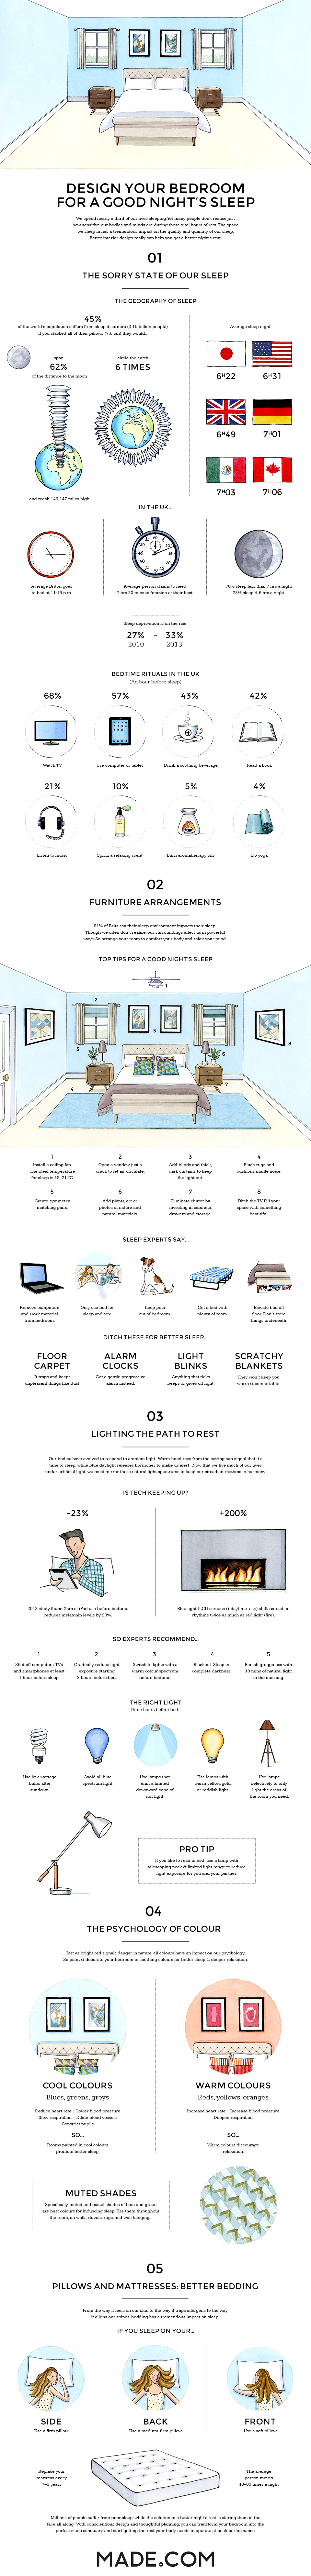 Design Your Bedroom For a Good Night's Sleep